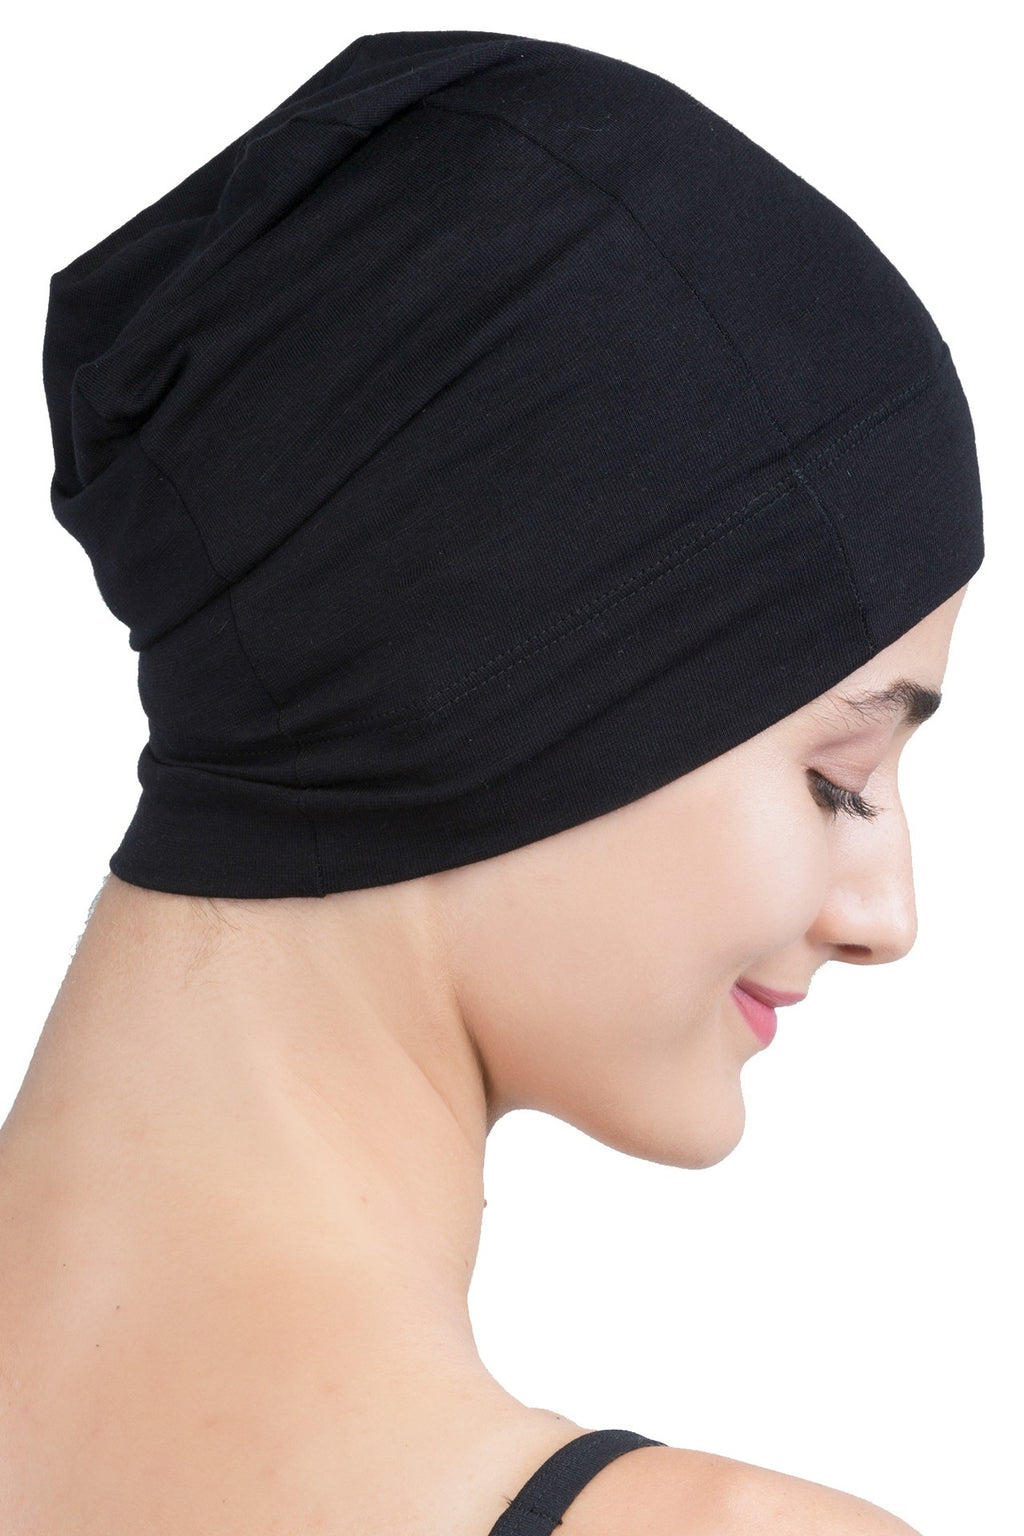 Snug Fit Sleep Cap - Black